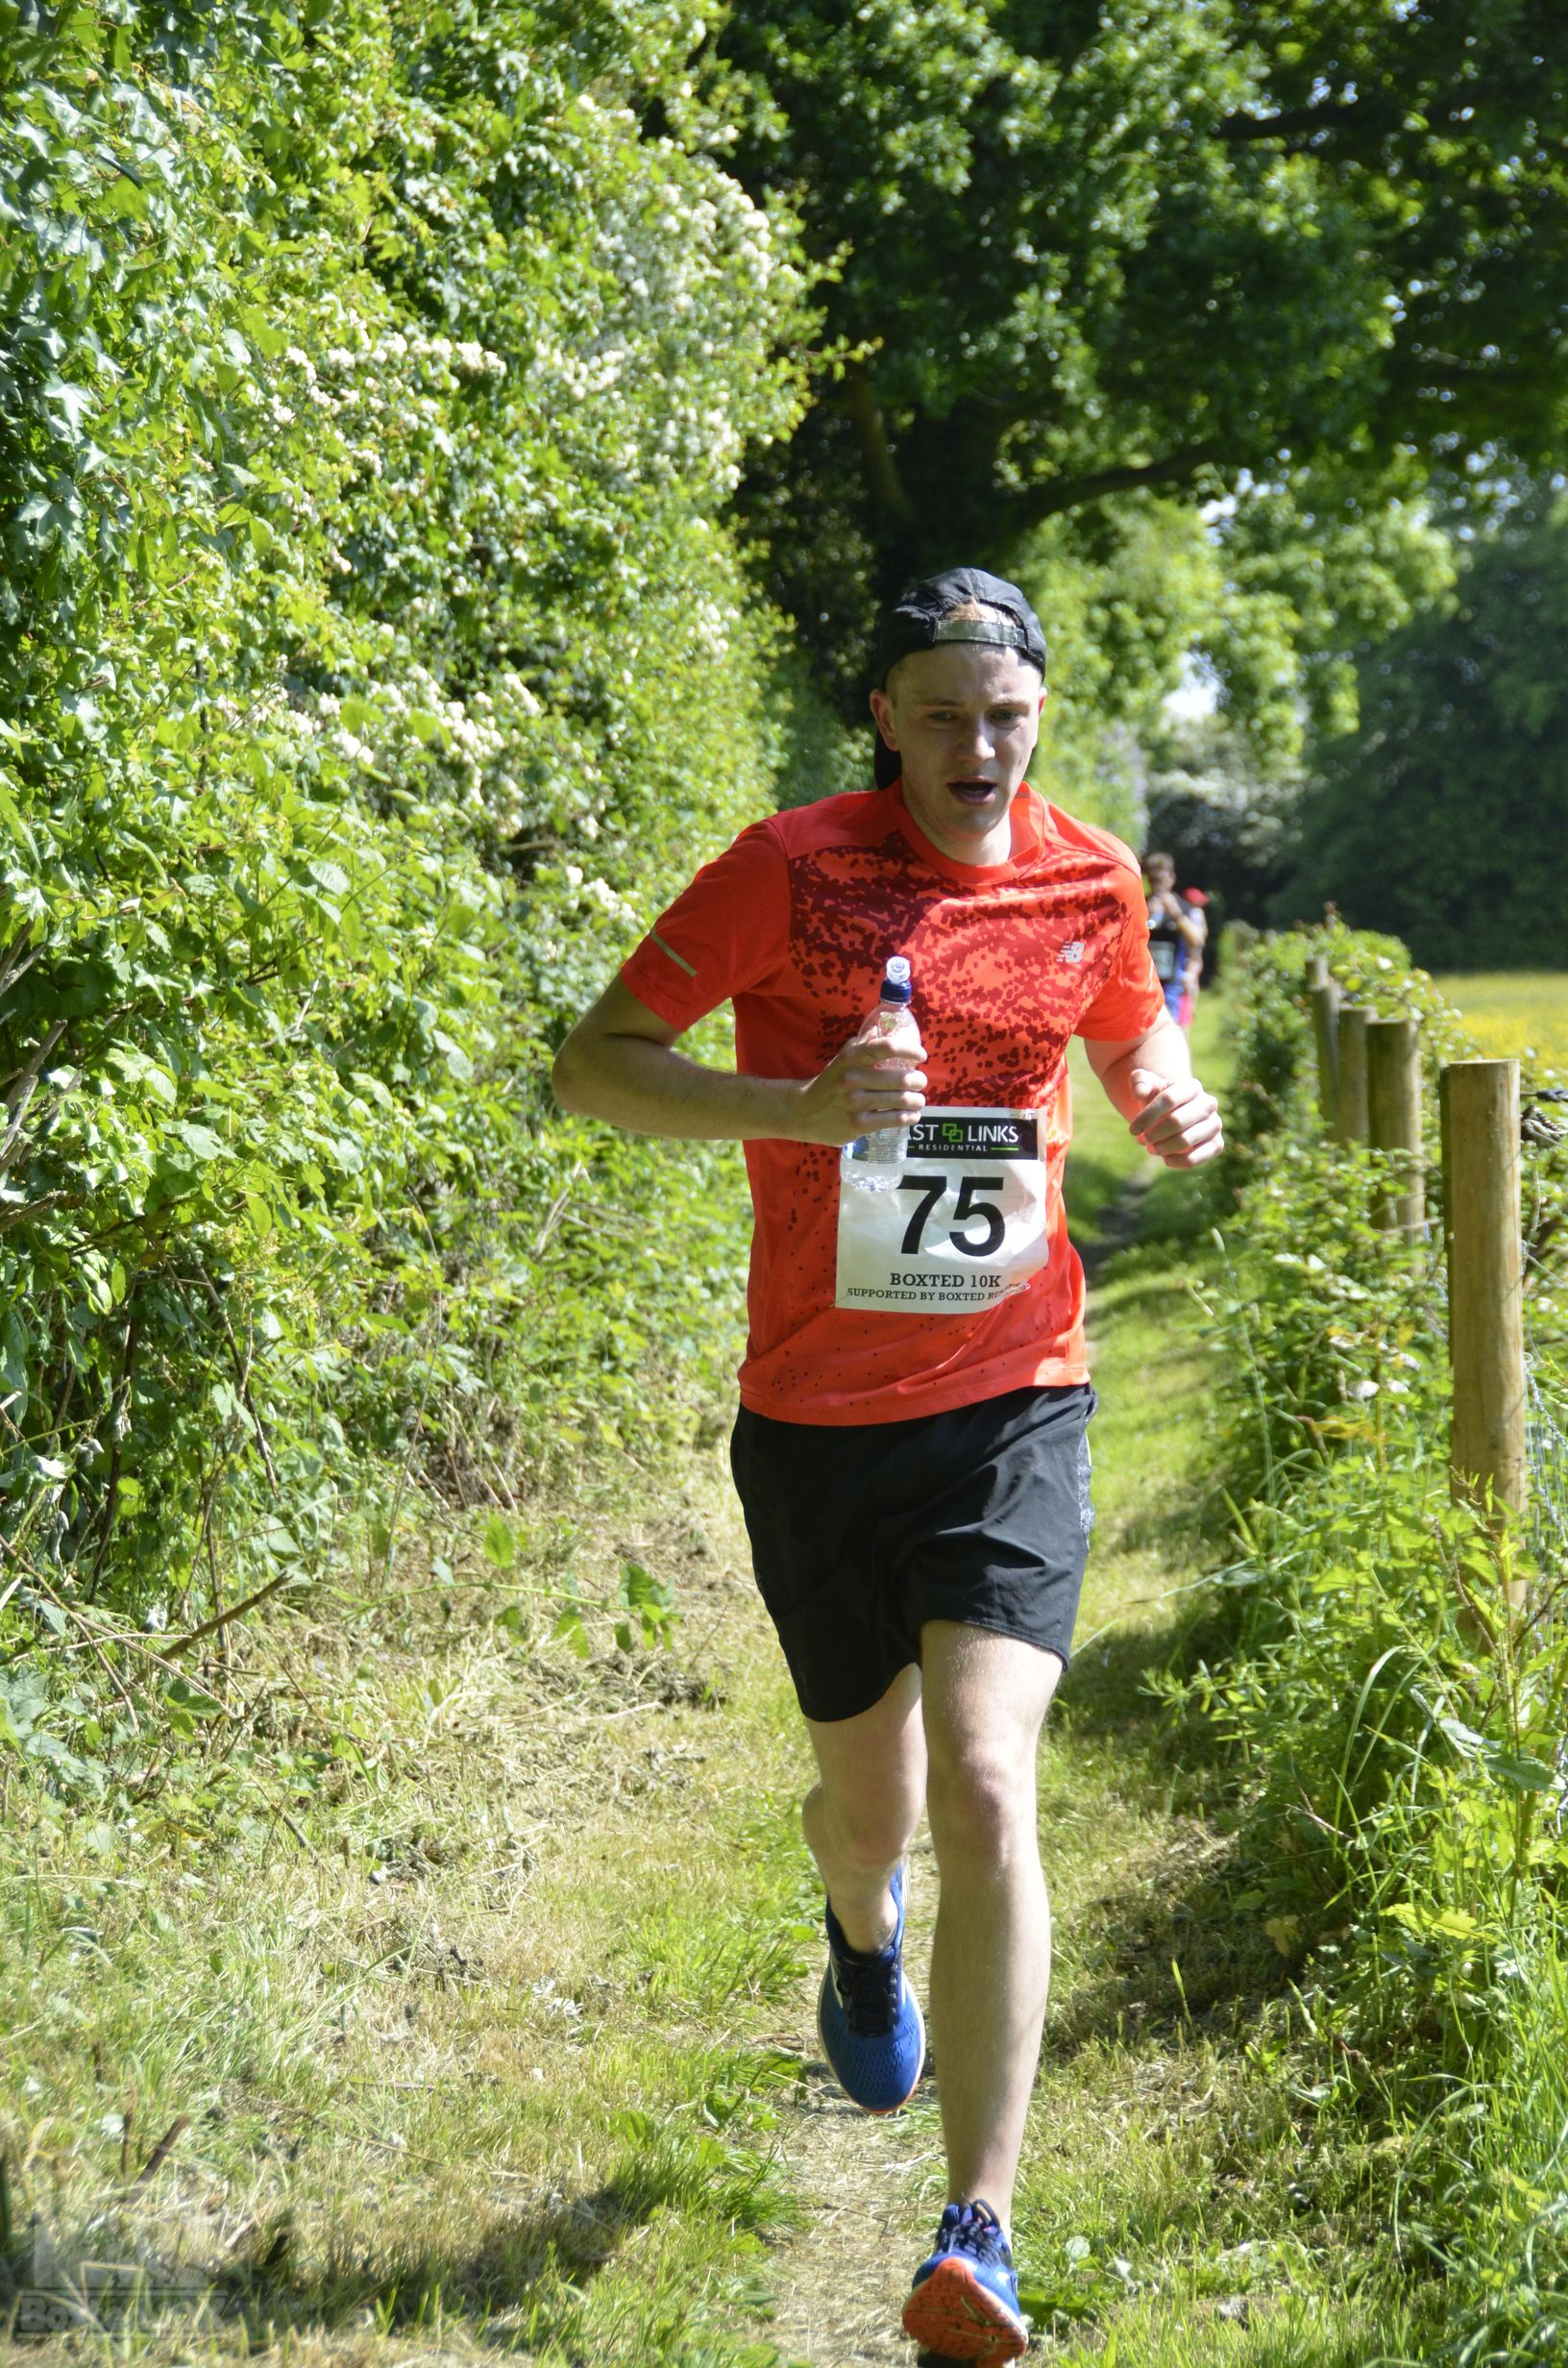 Boxted10k-00143